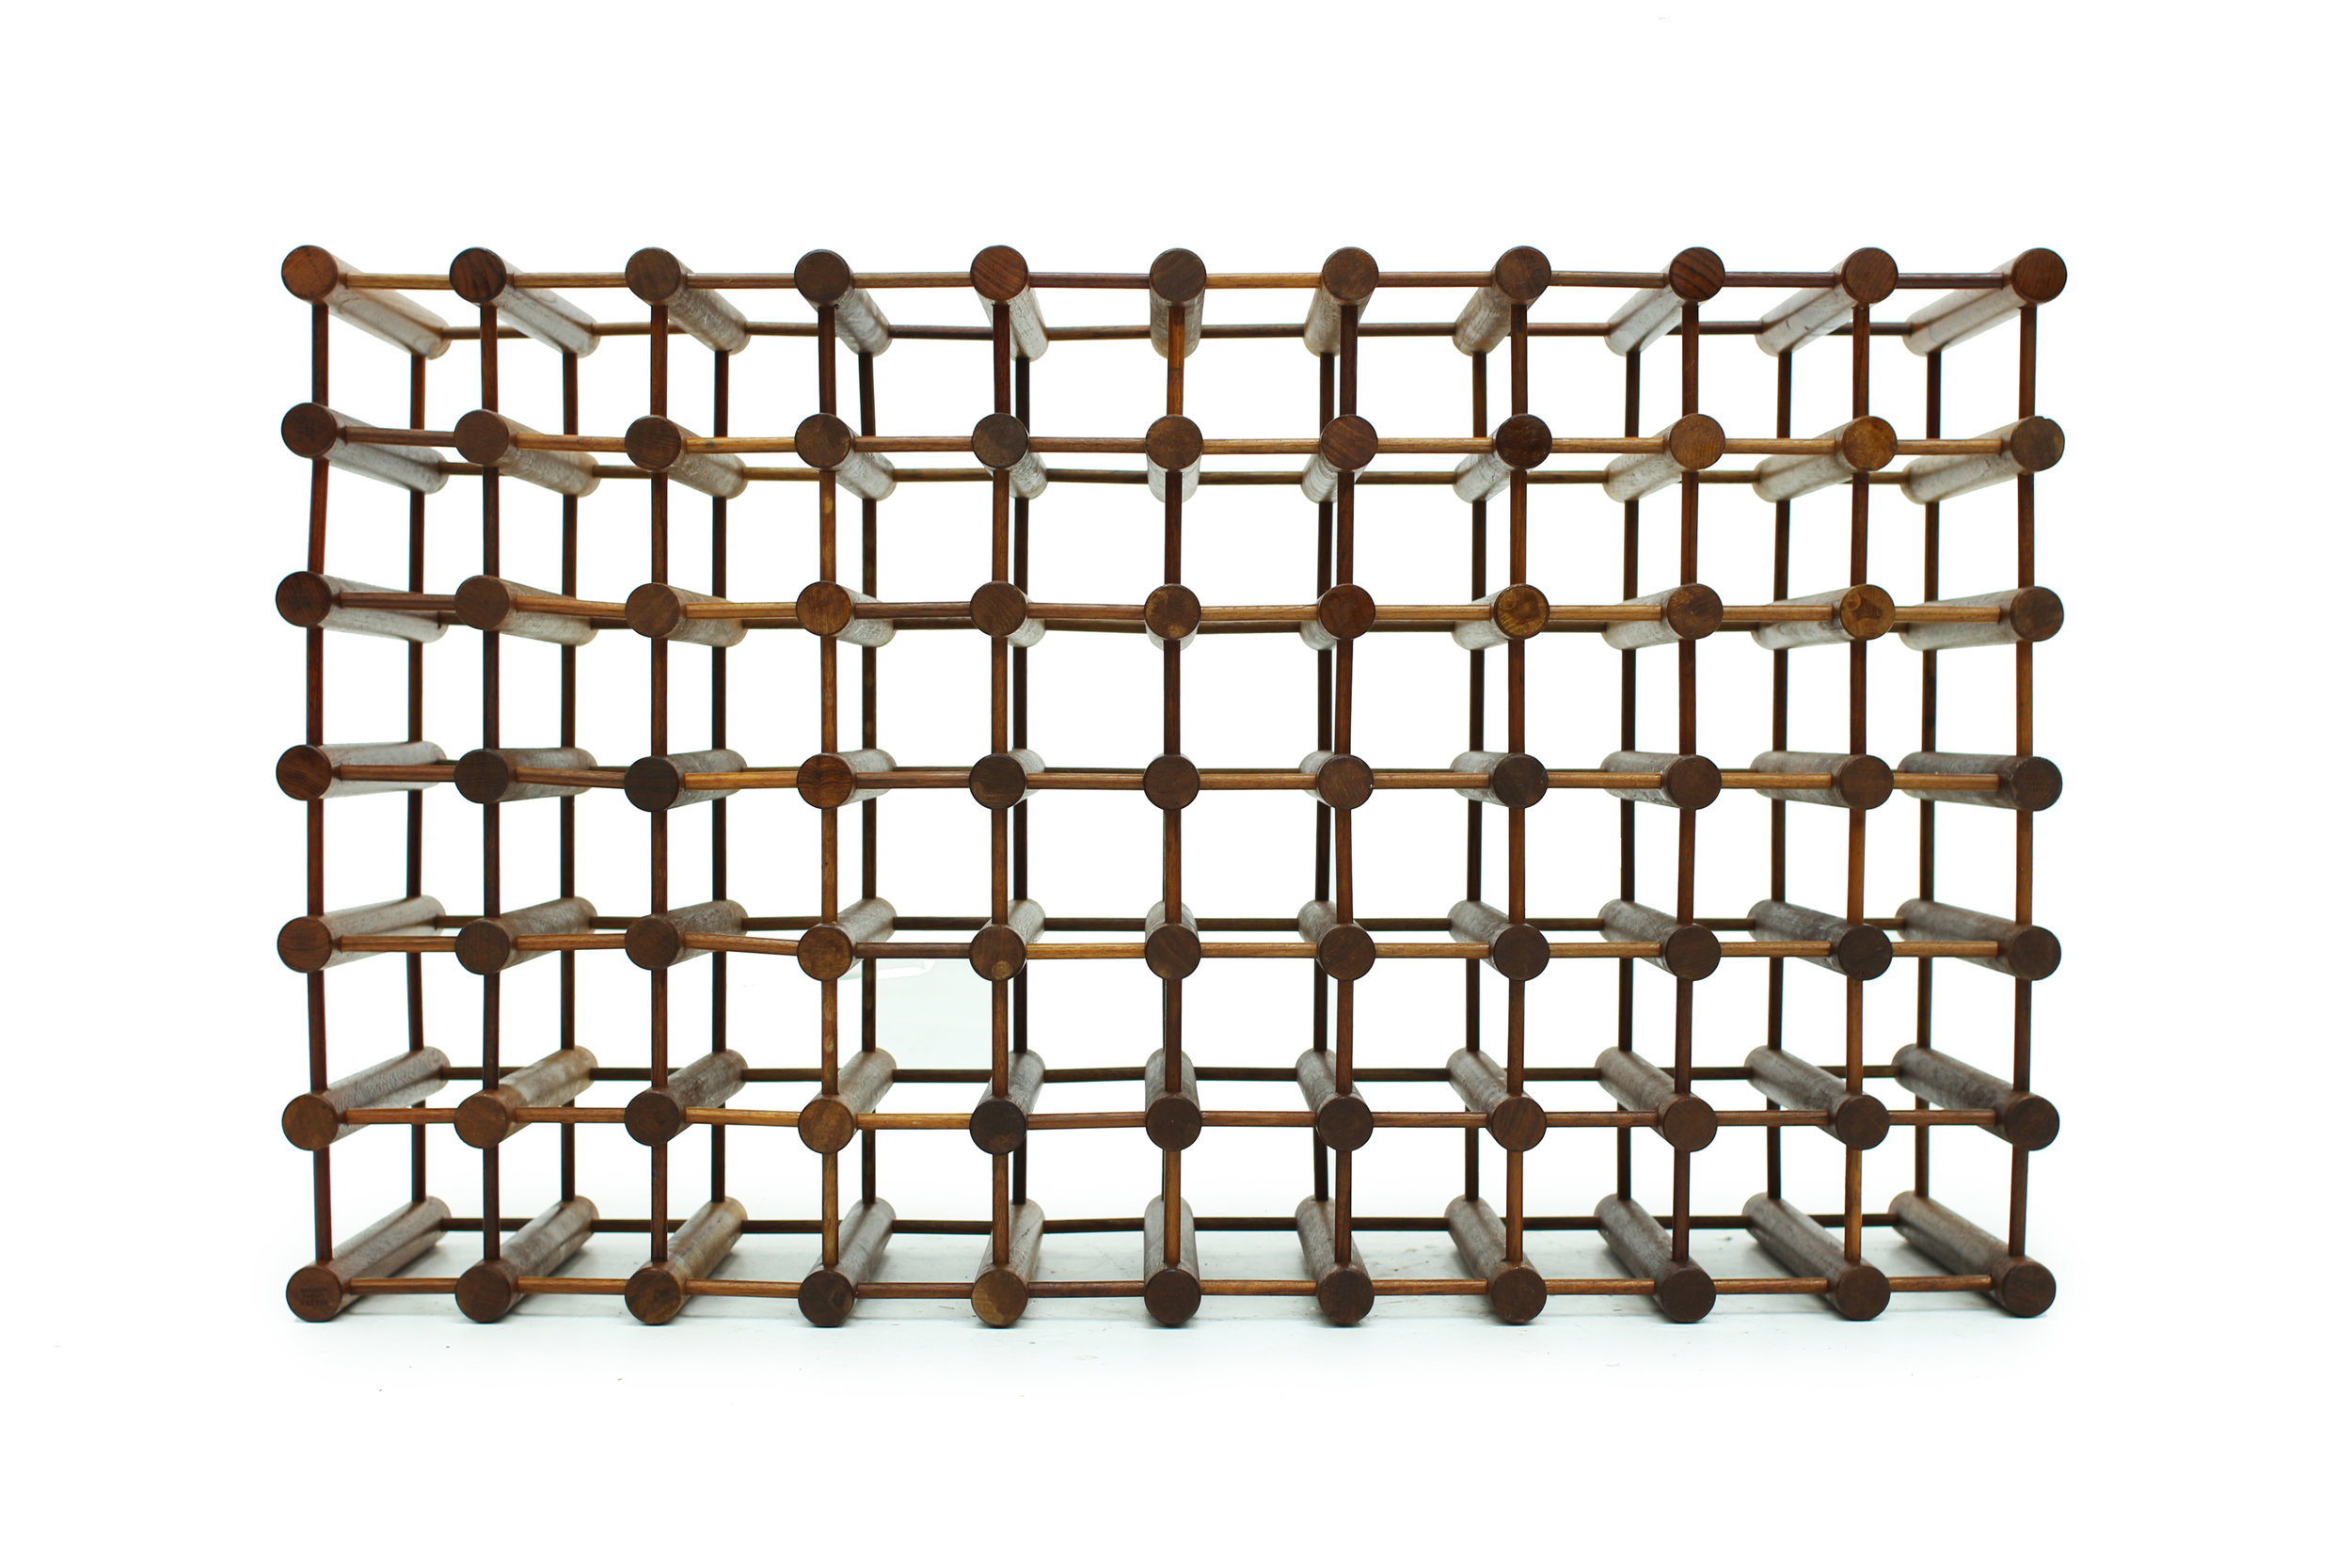 Danish Teak 60 Bottle Wine Rack by Nissen Langaa (3).jpg